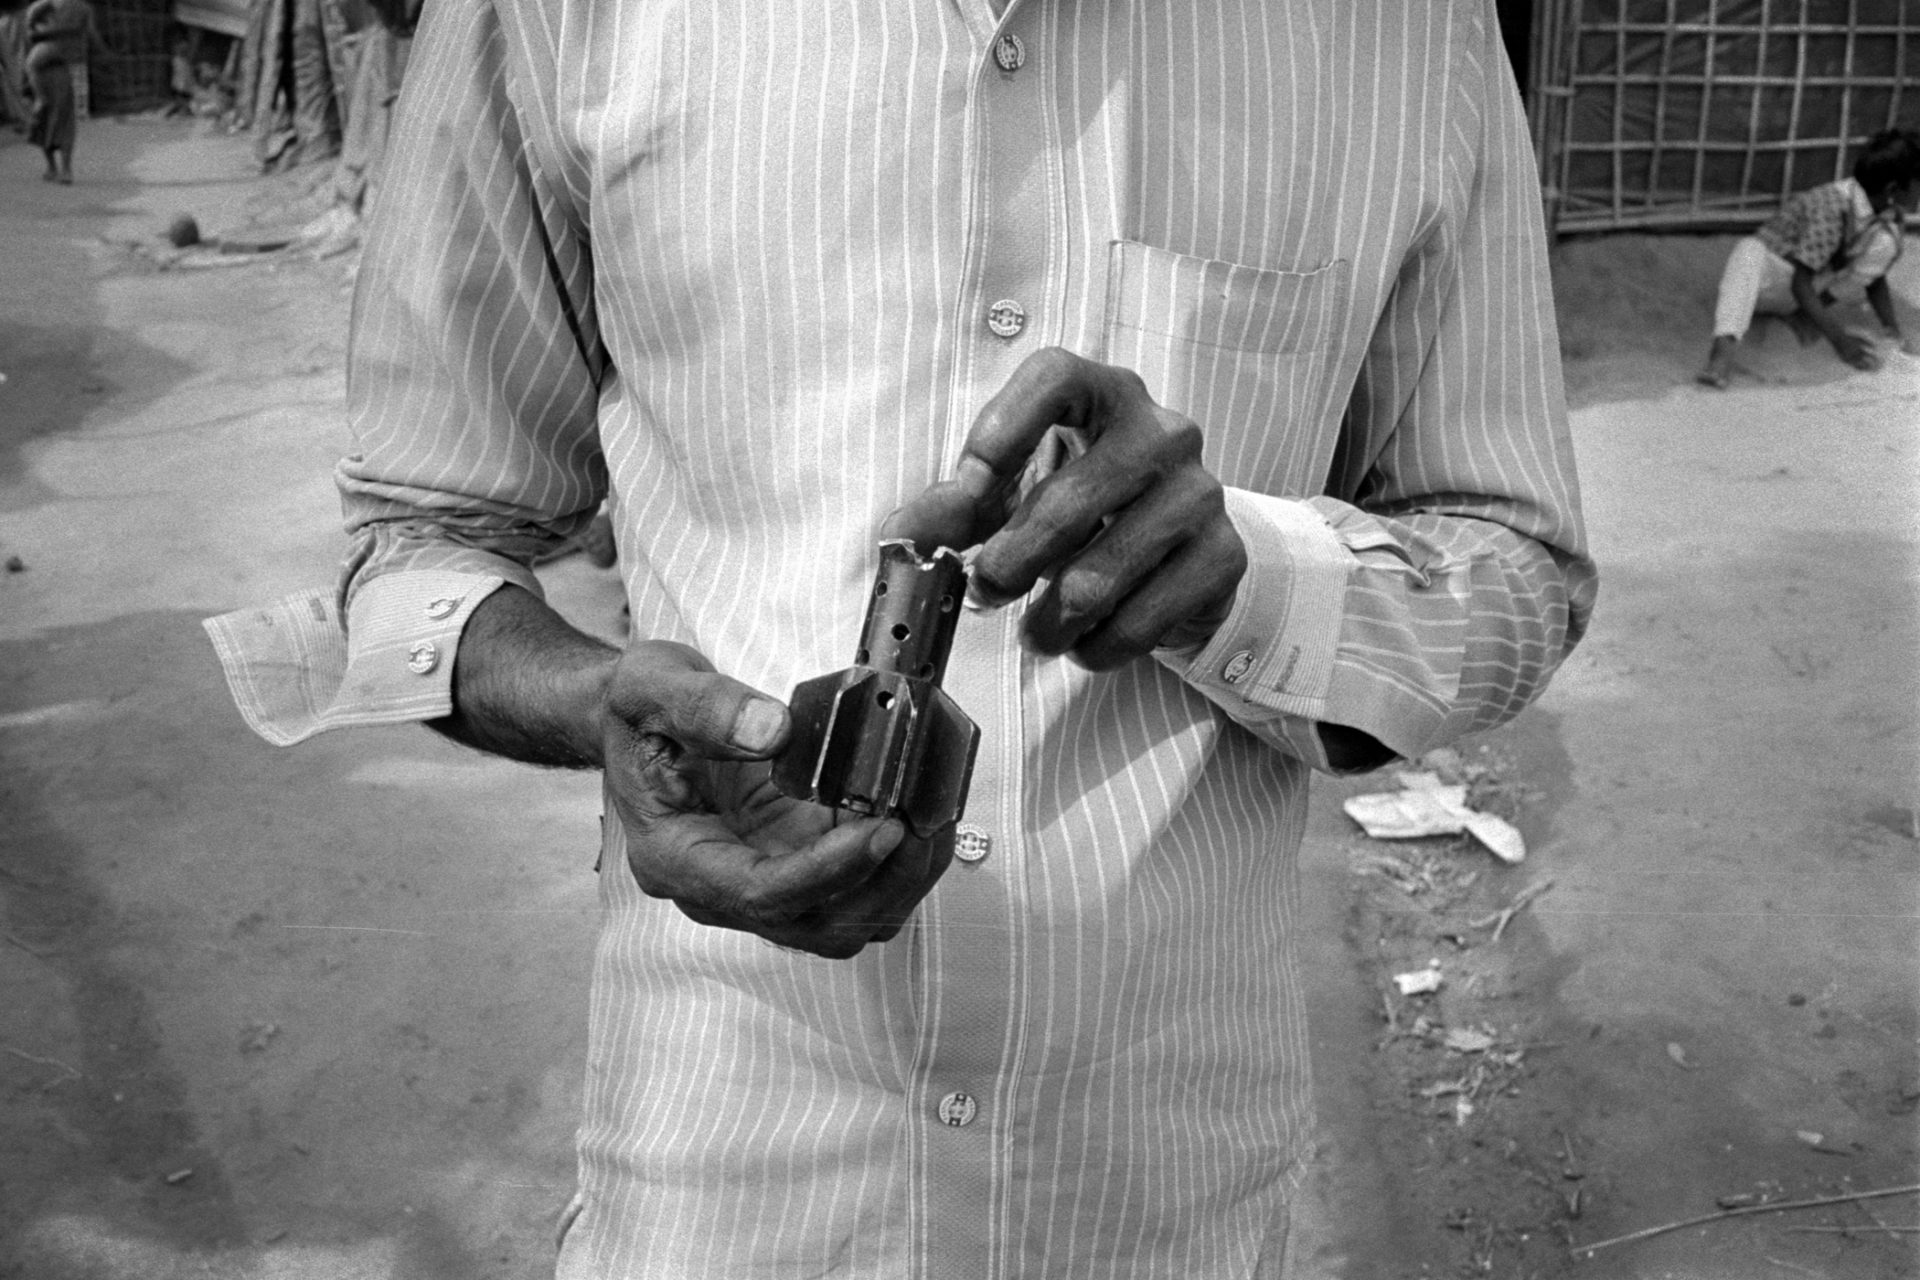 A Rohingya man holds a piece of shrapnel from a rocket propelled grenade used on by the Myanmar military when they attacked his village in Maungdaw, Rakhine State.